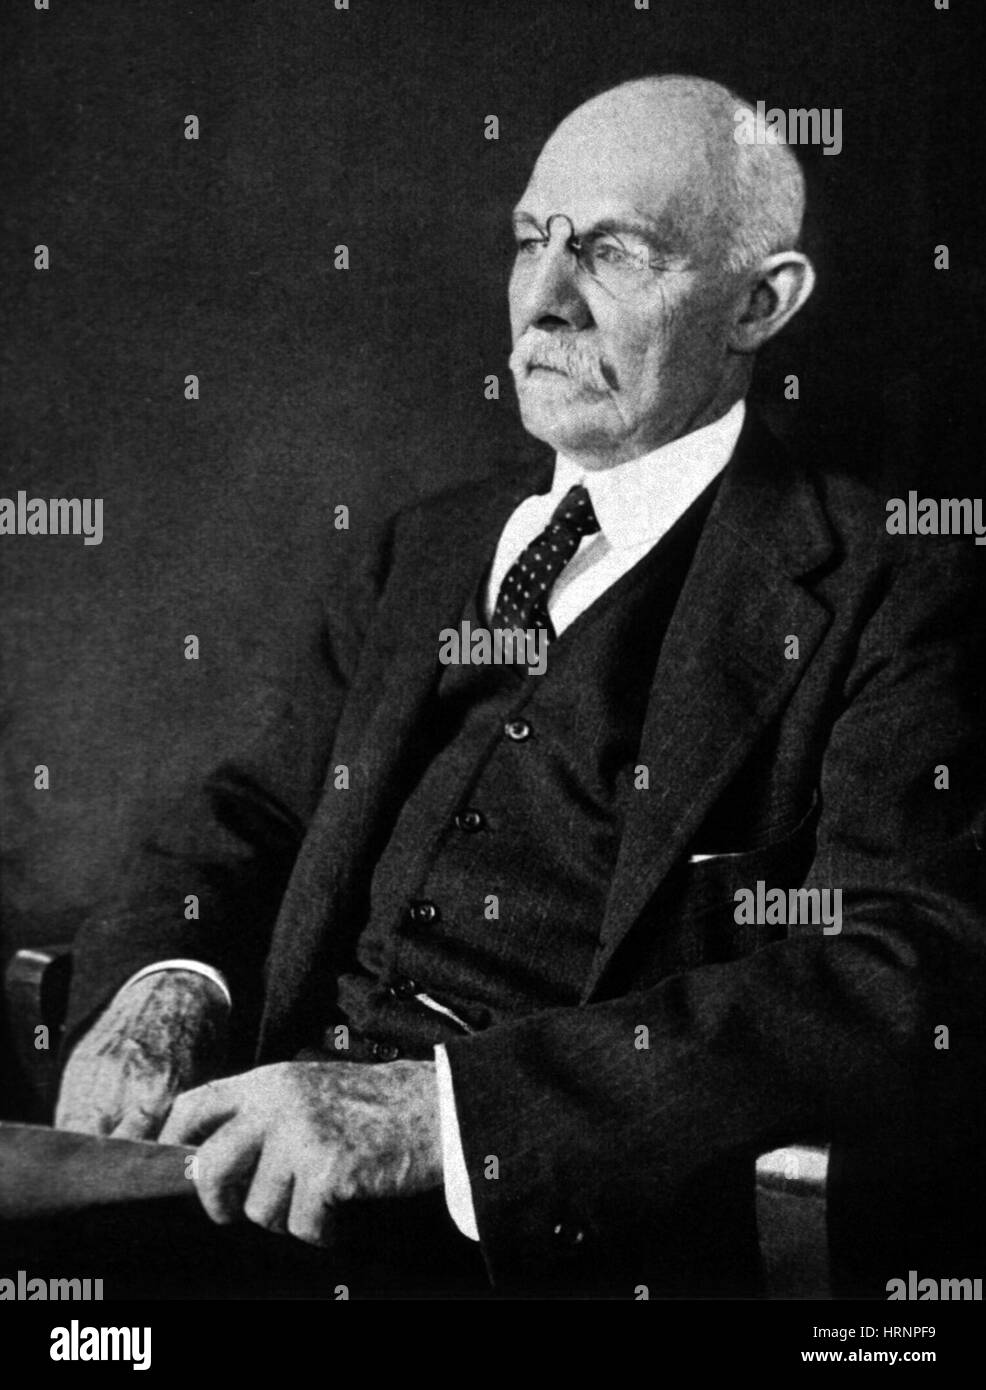 William Stewart Halsted, American Surgeon - Stock Image